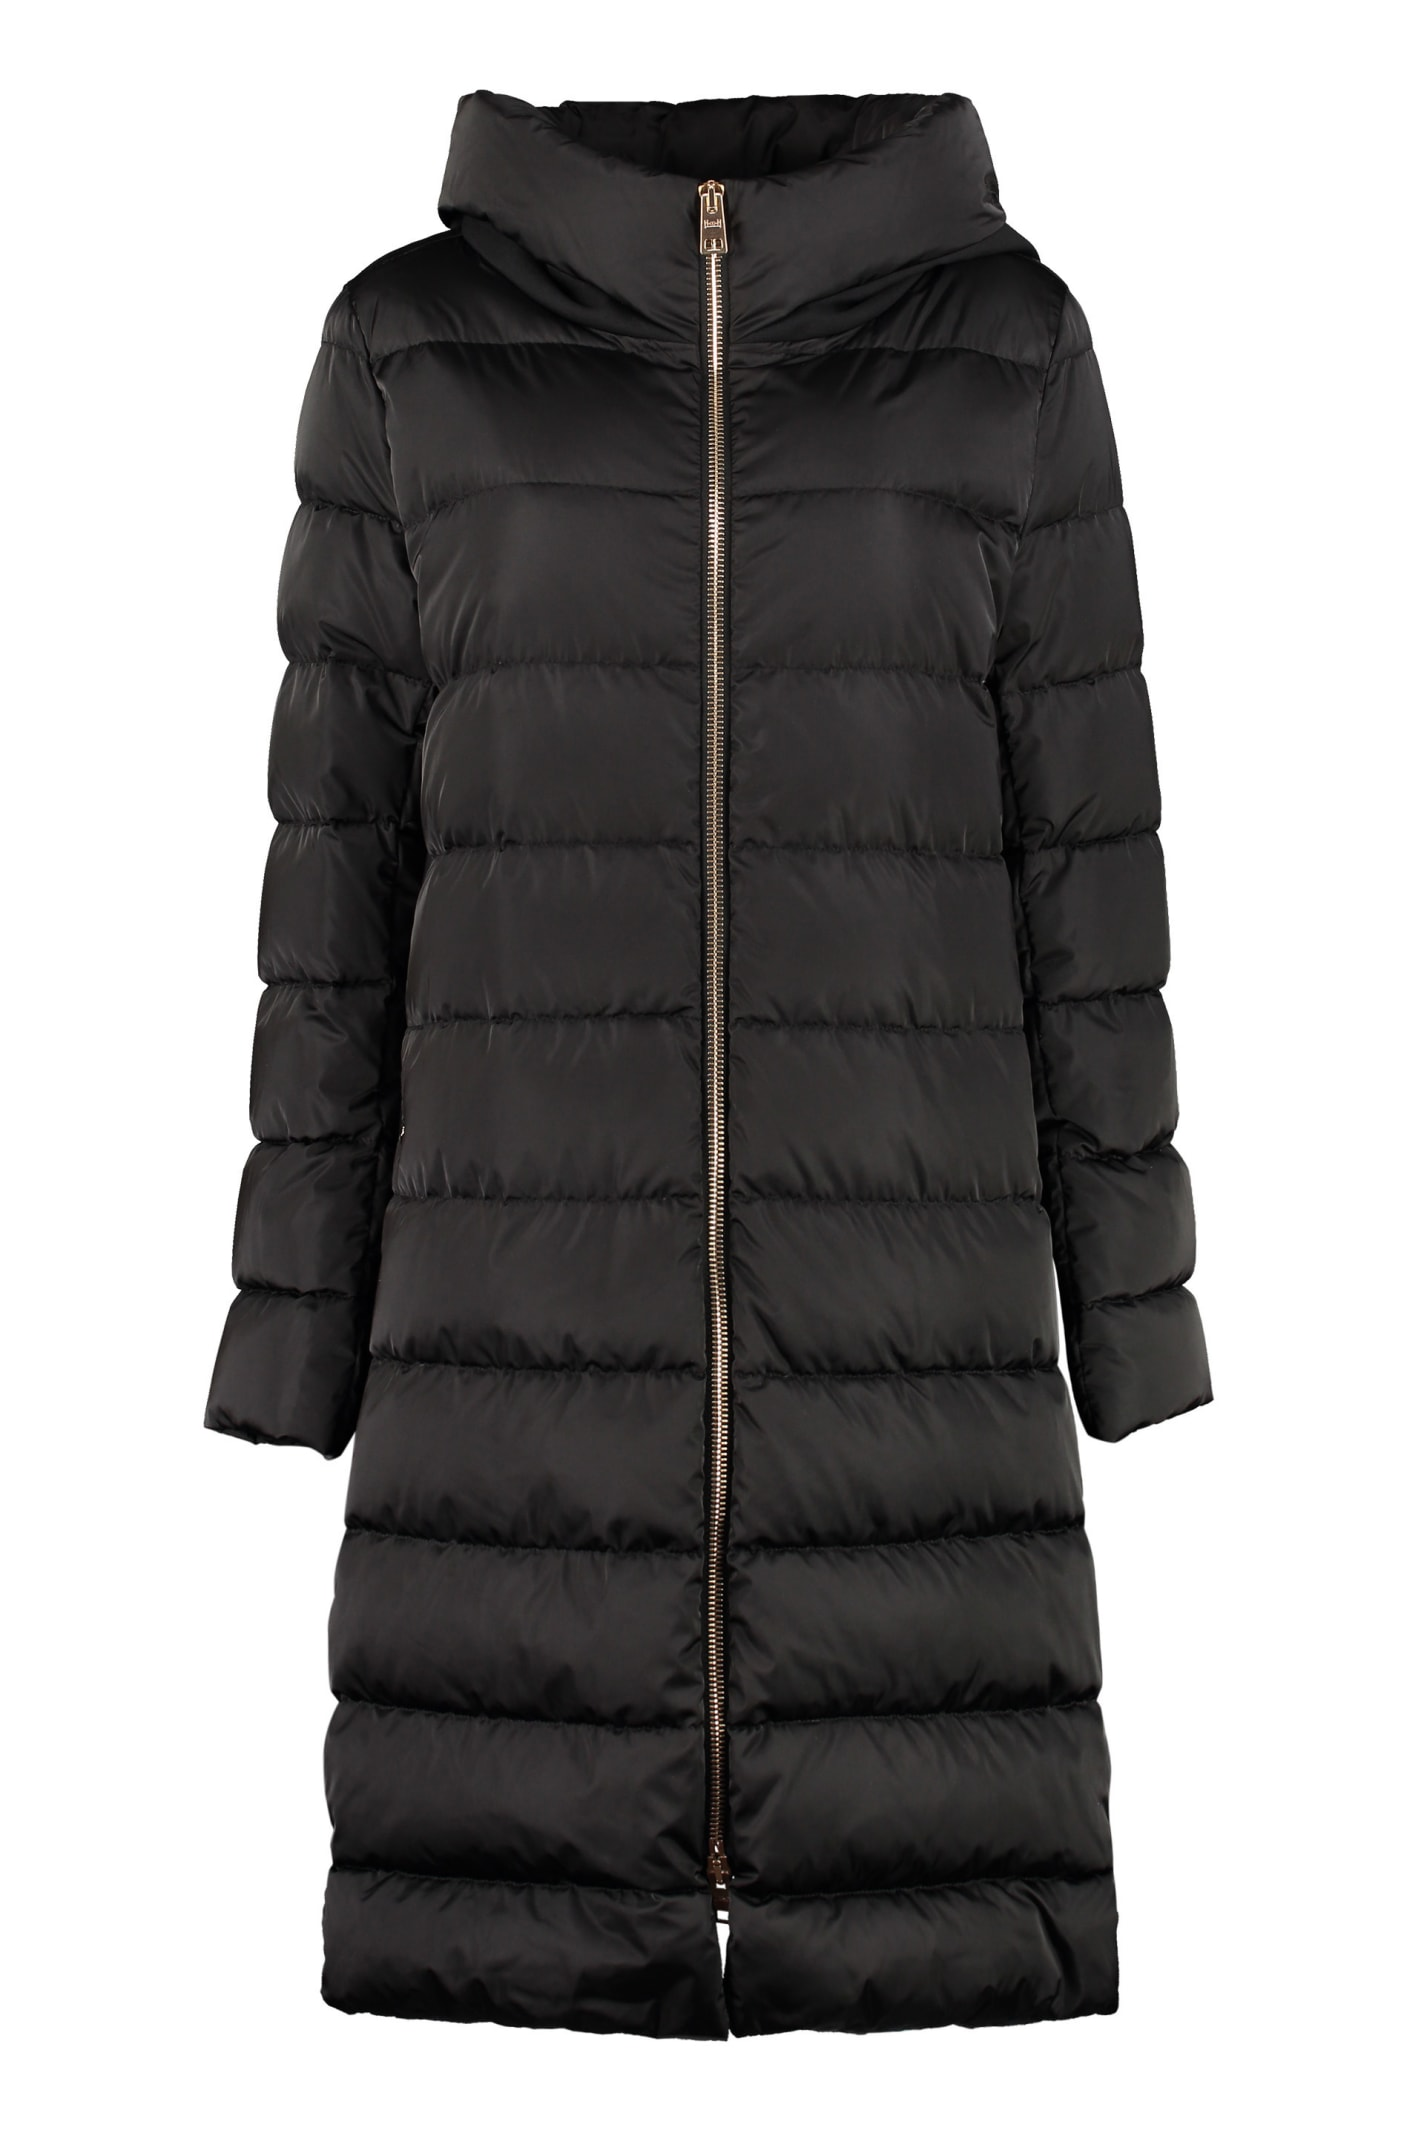 Herno Long Hooded Down Jacket